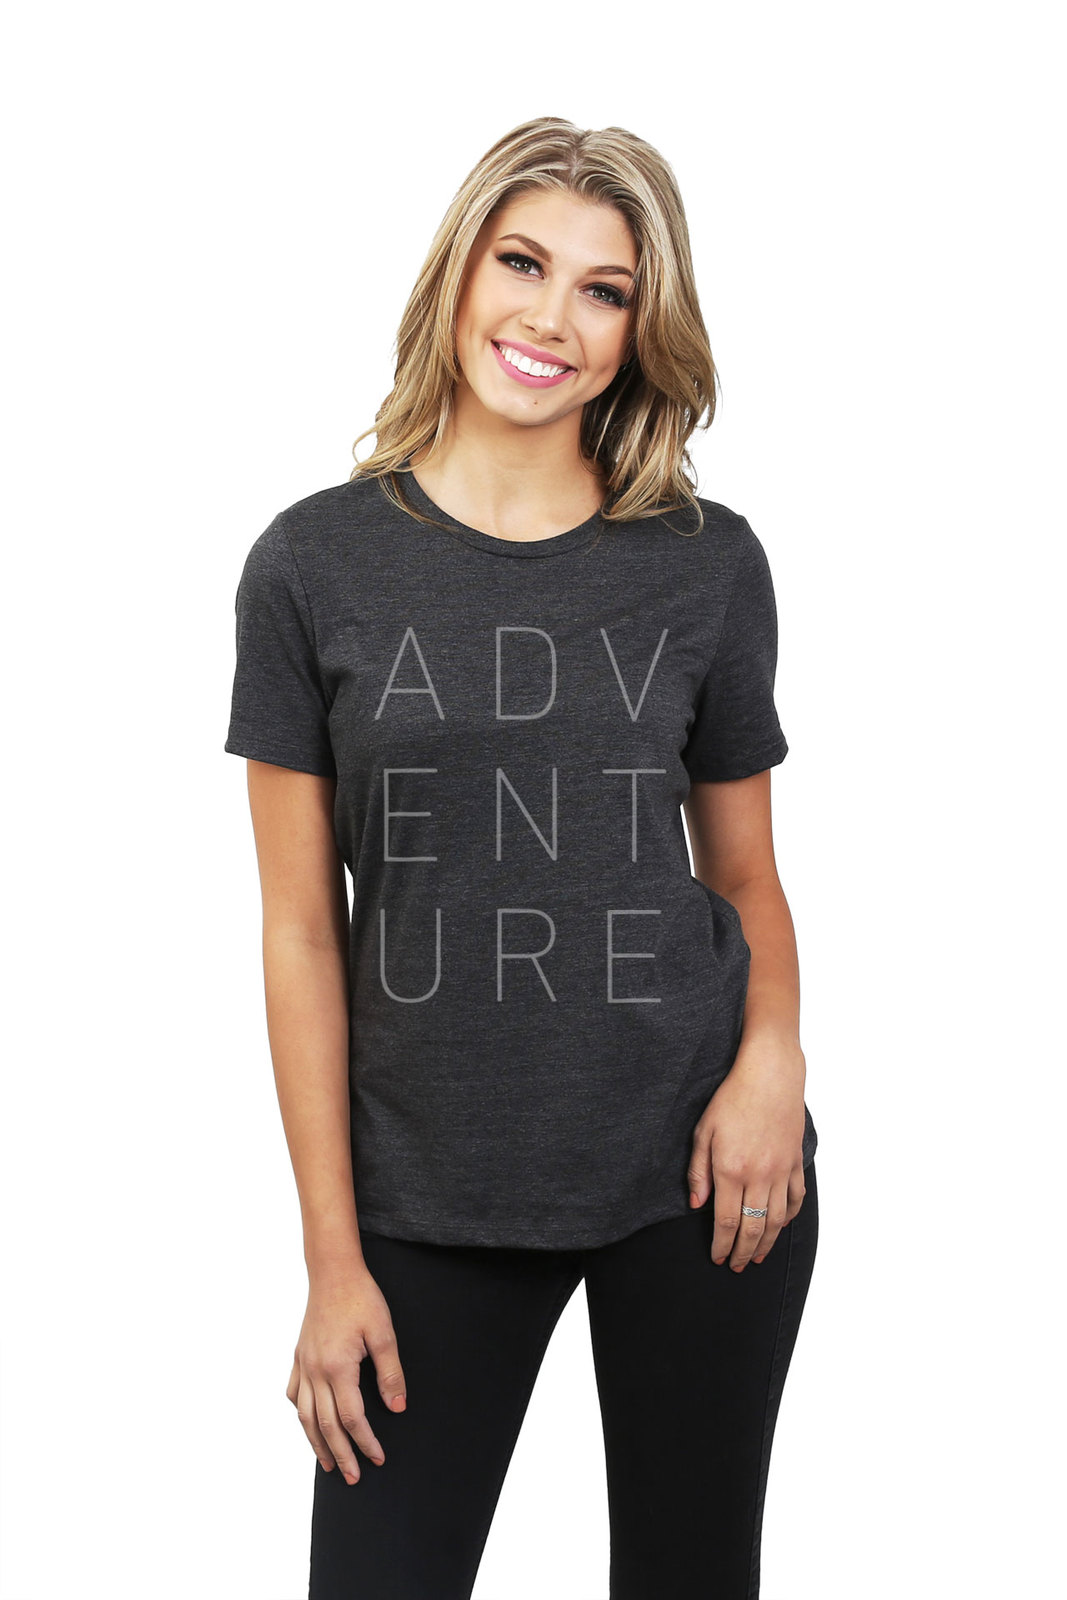 Adventure Women's Relaxed T-Shirt Tee Charcoal Grey